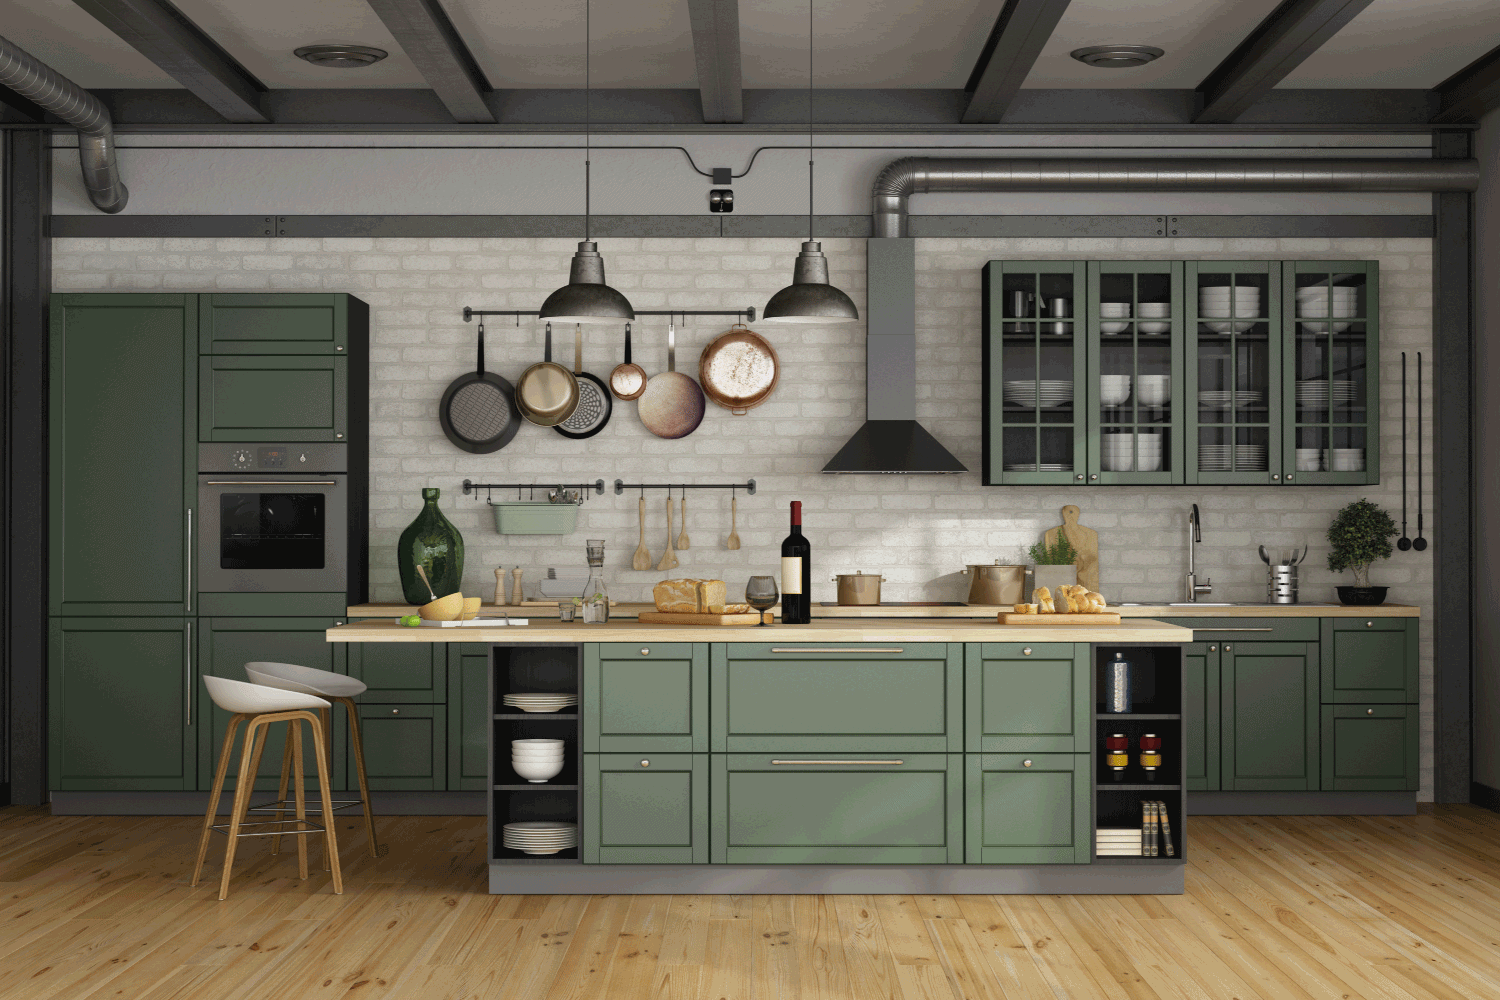 Vintage green kitchen with island in a loft